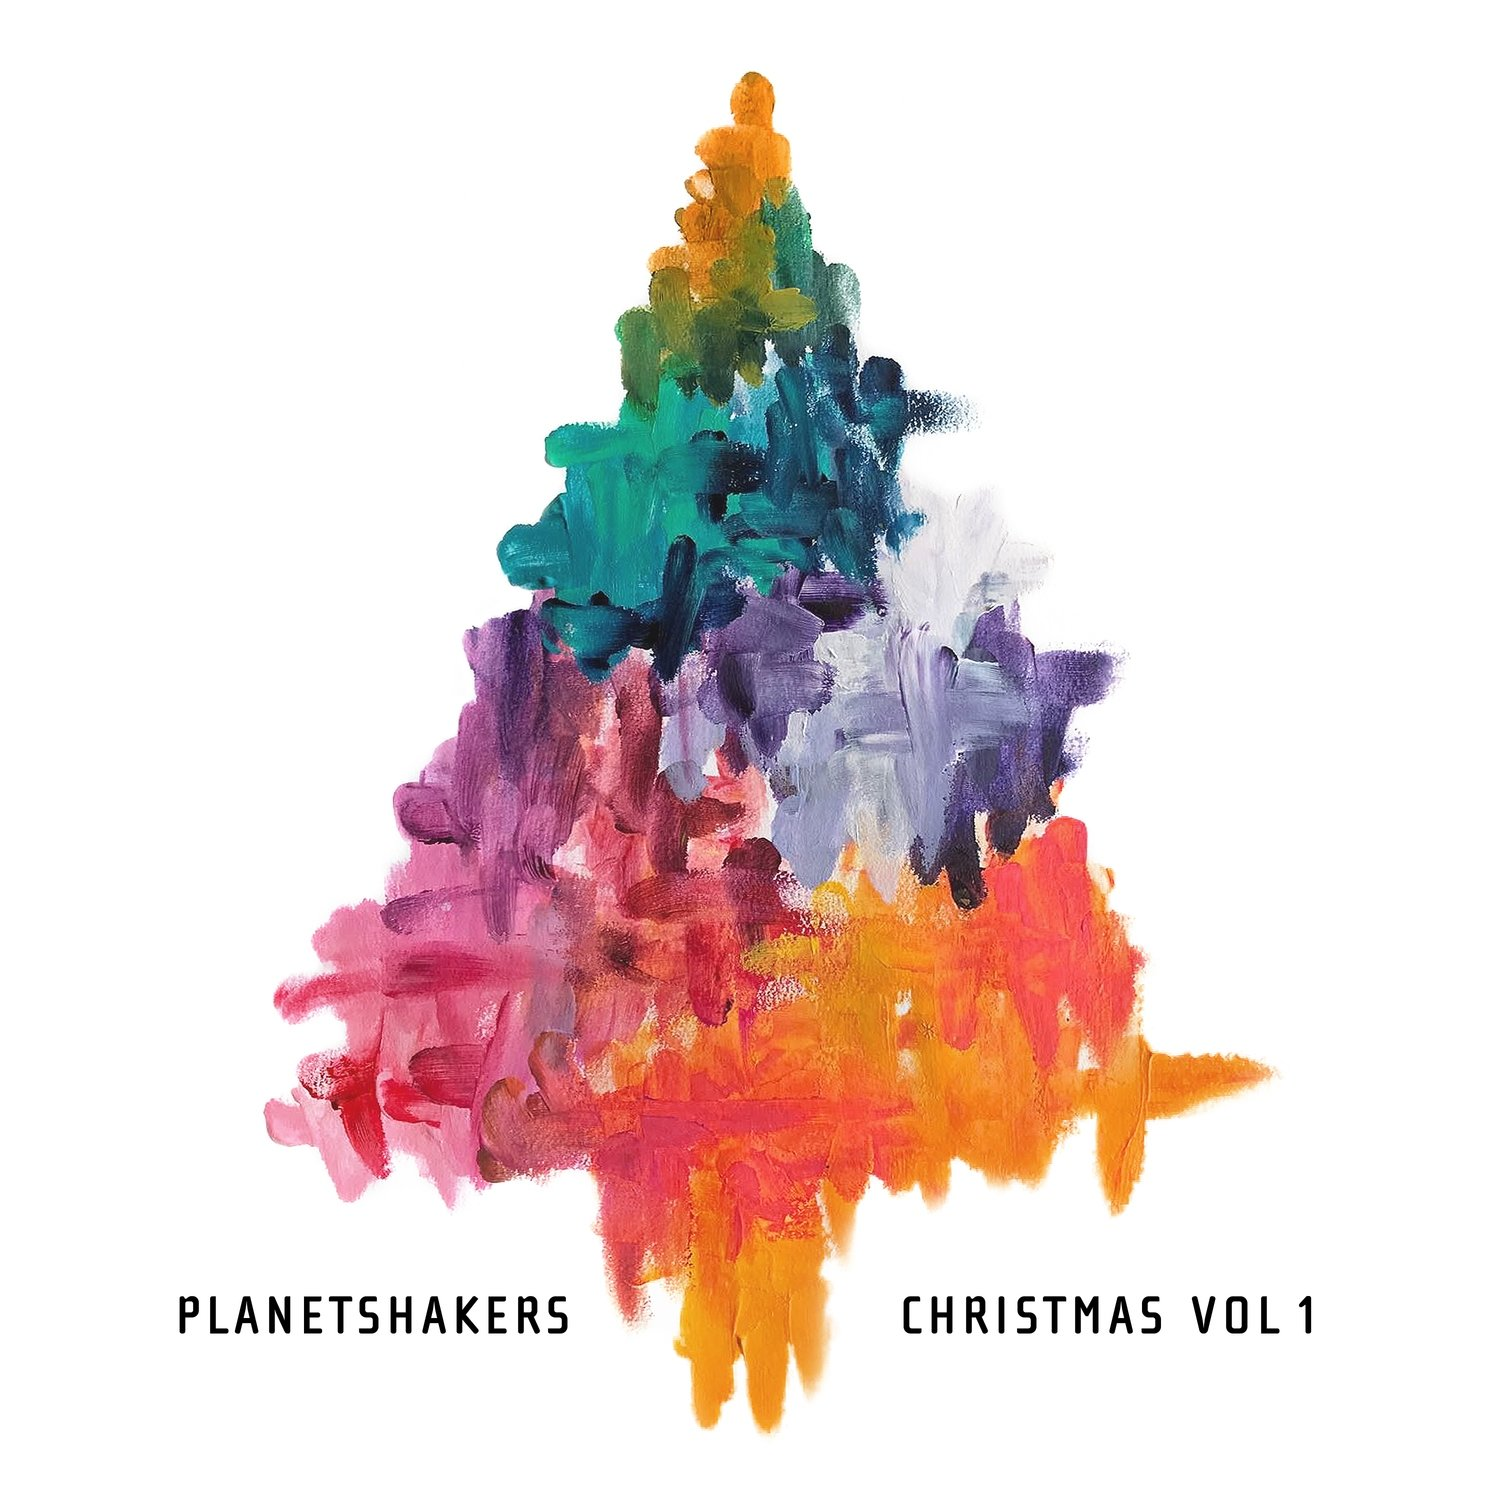 Planetshakers Christmas Vol. 1 EP